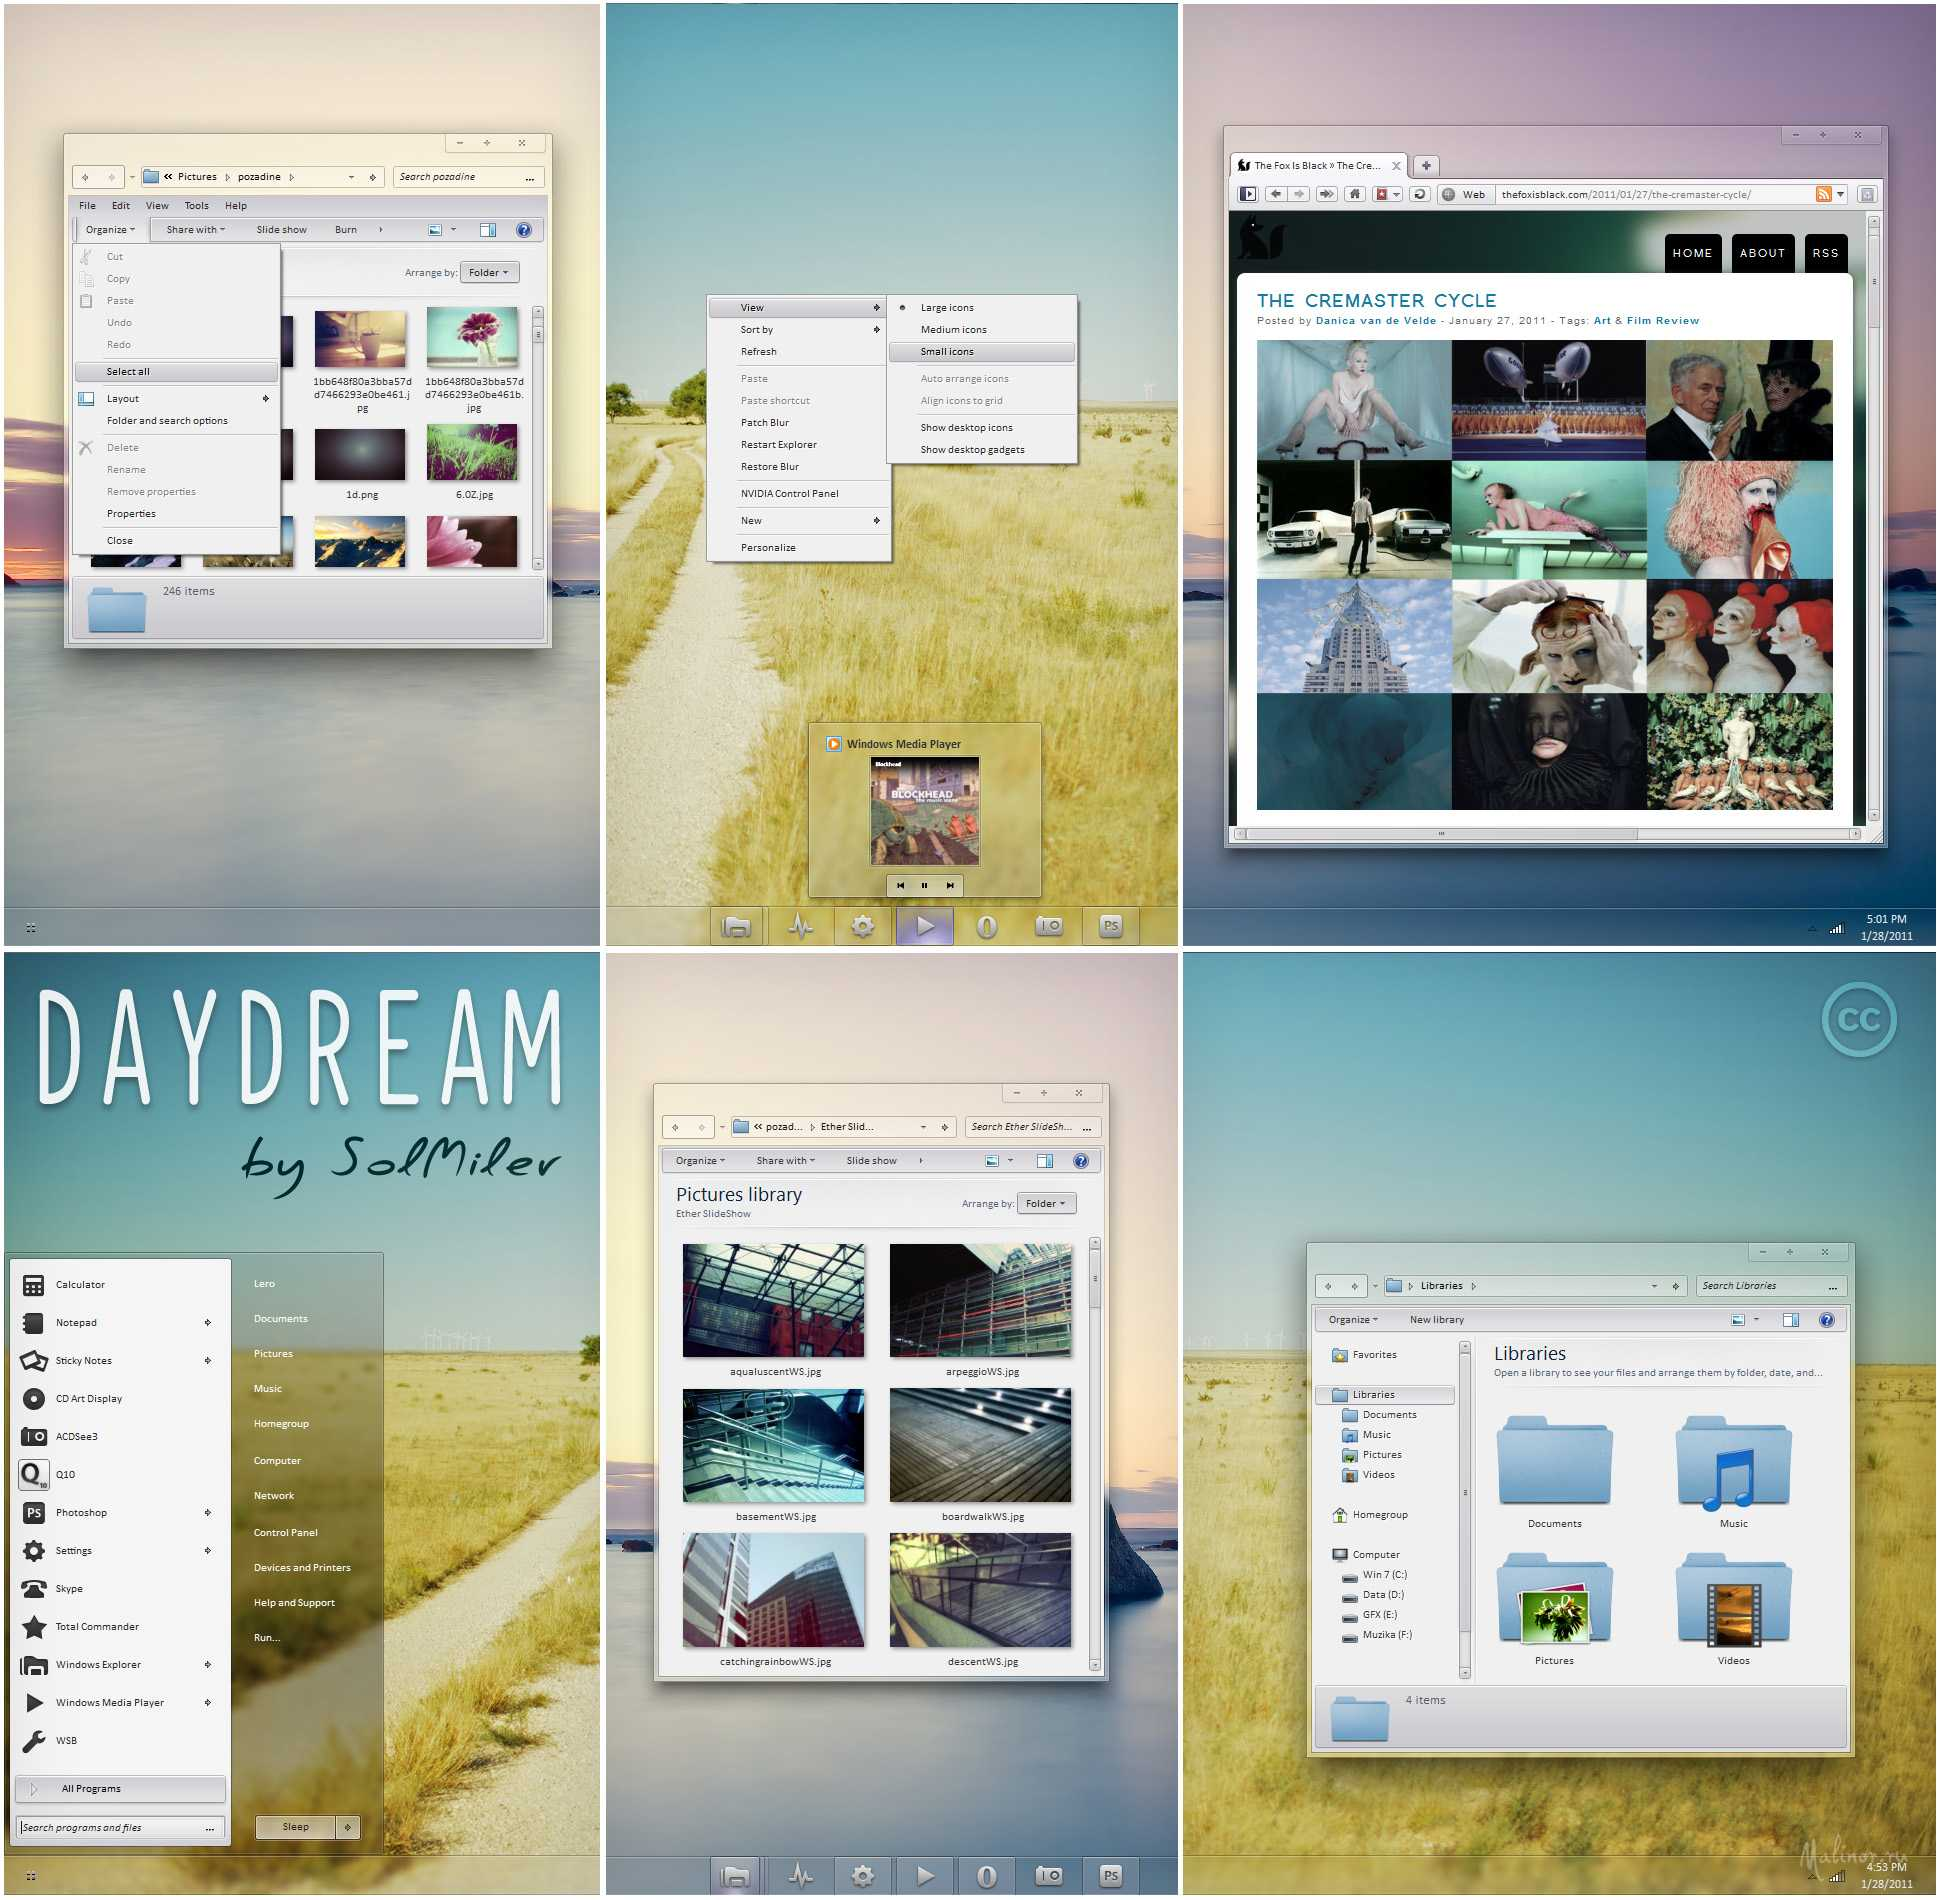 daydream for windows 7 by solmiler